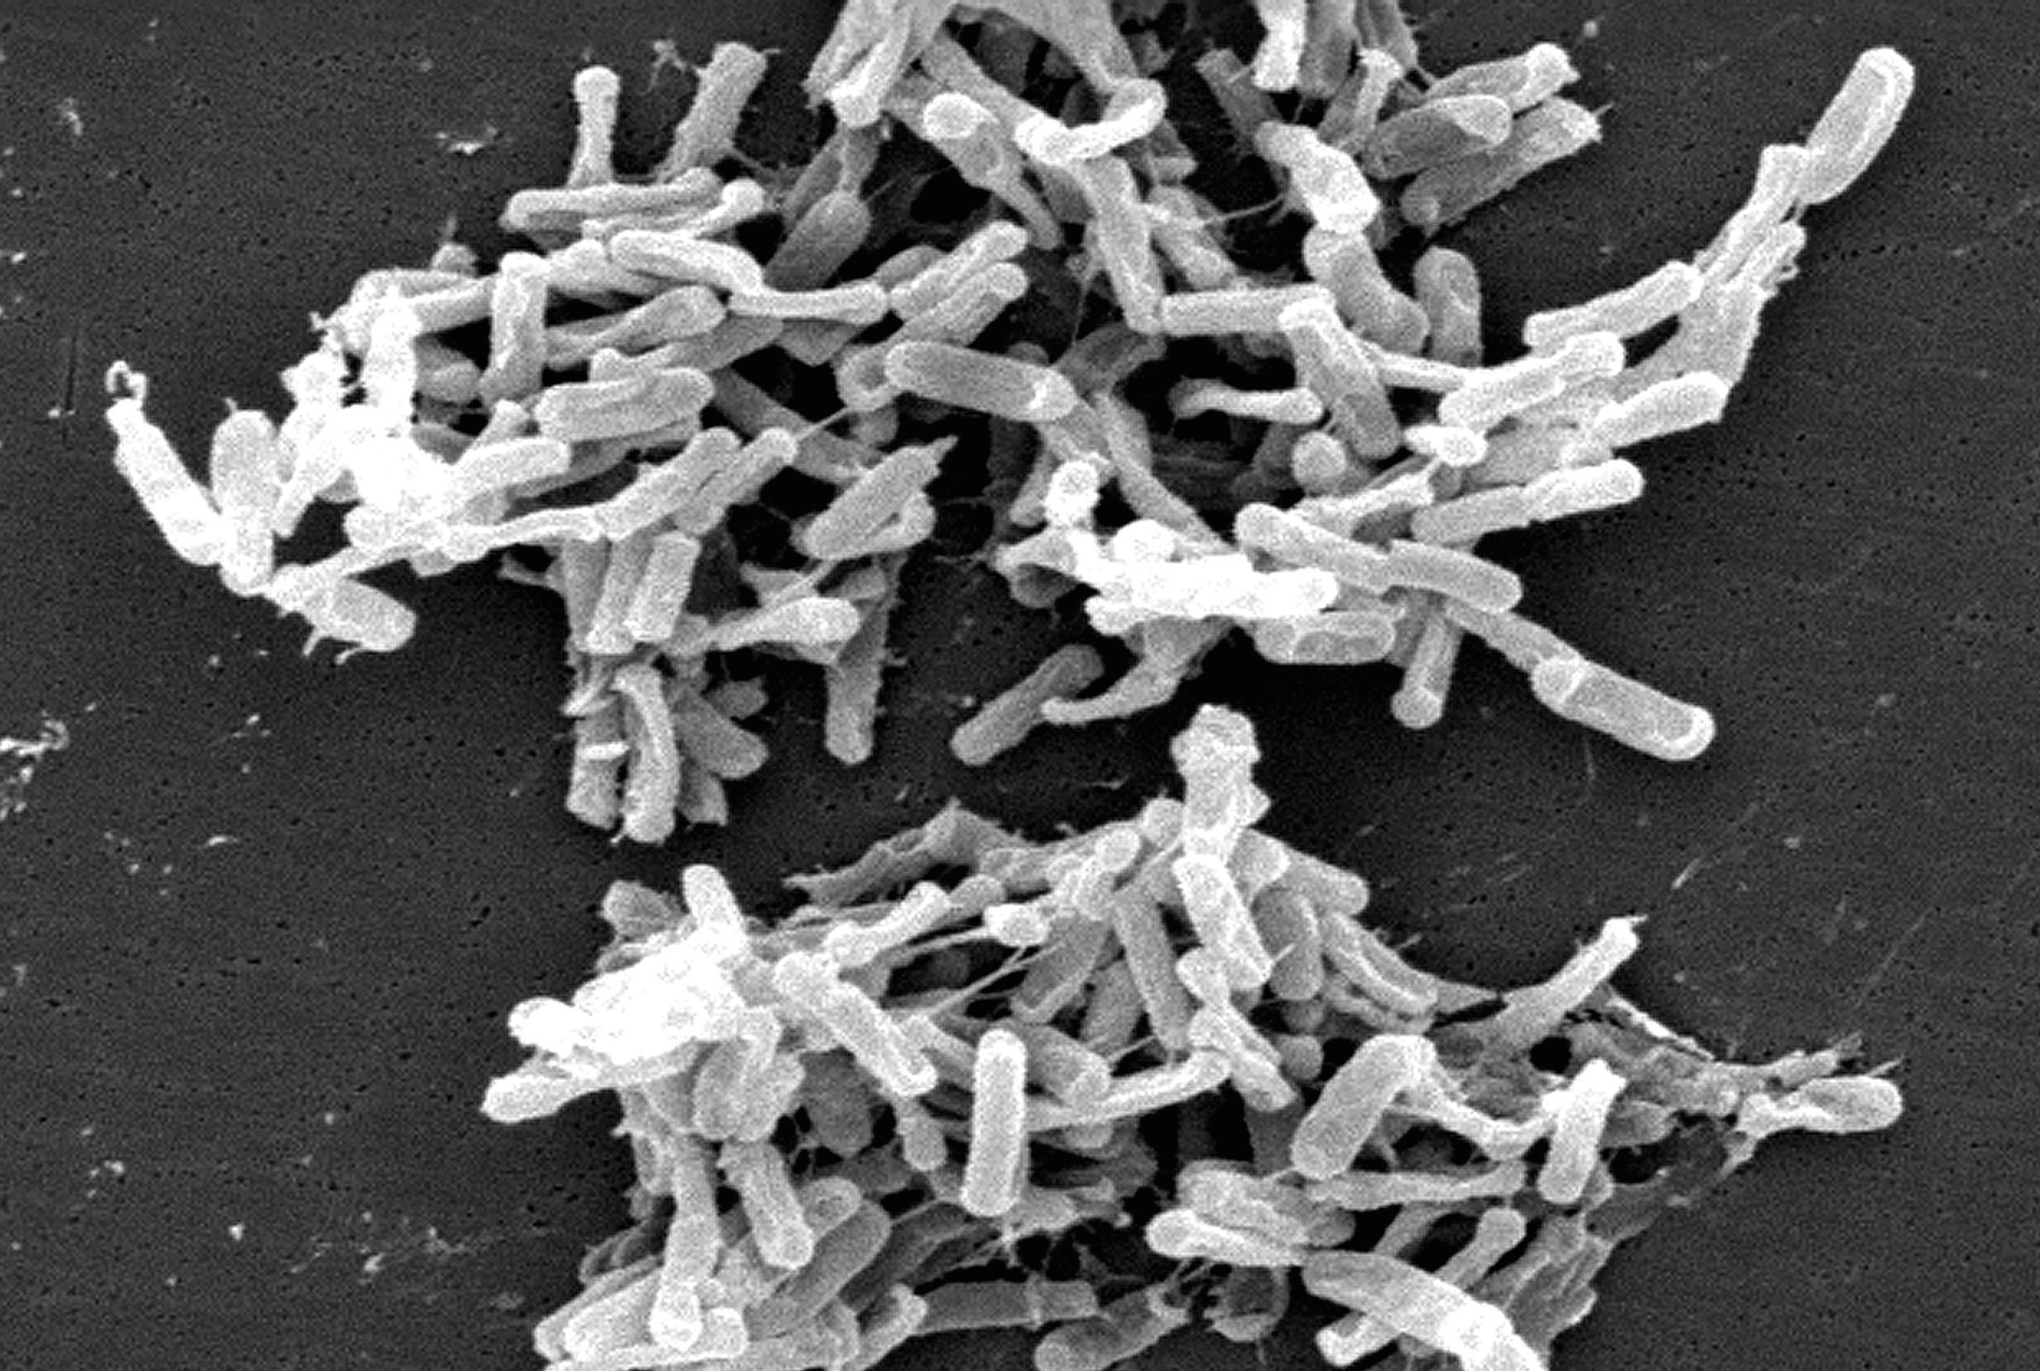 Clostridium_difficile_01